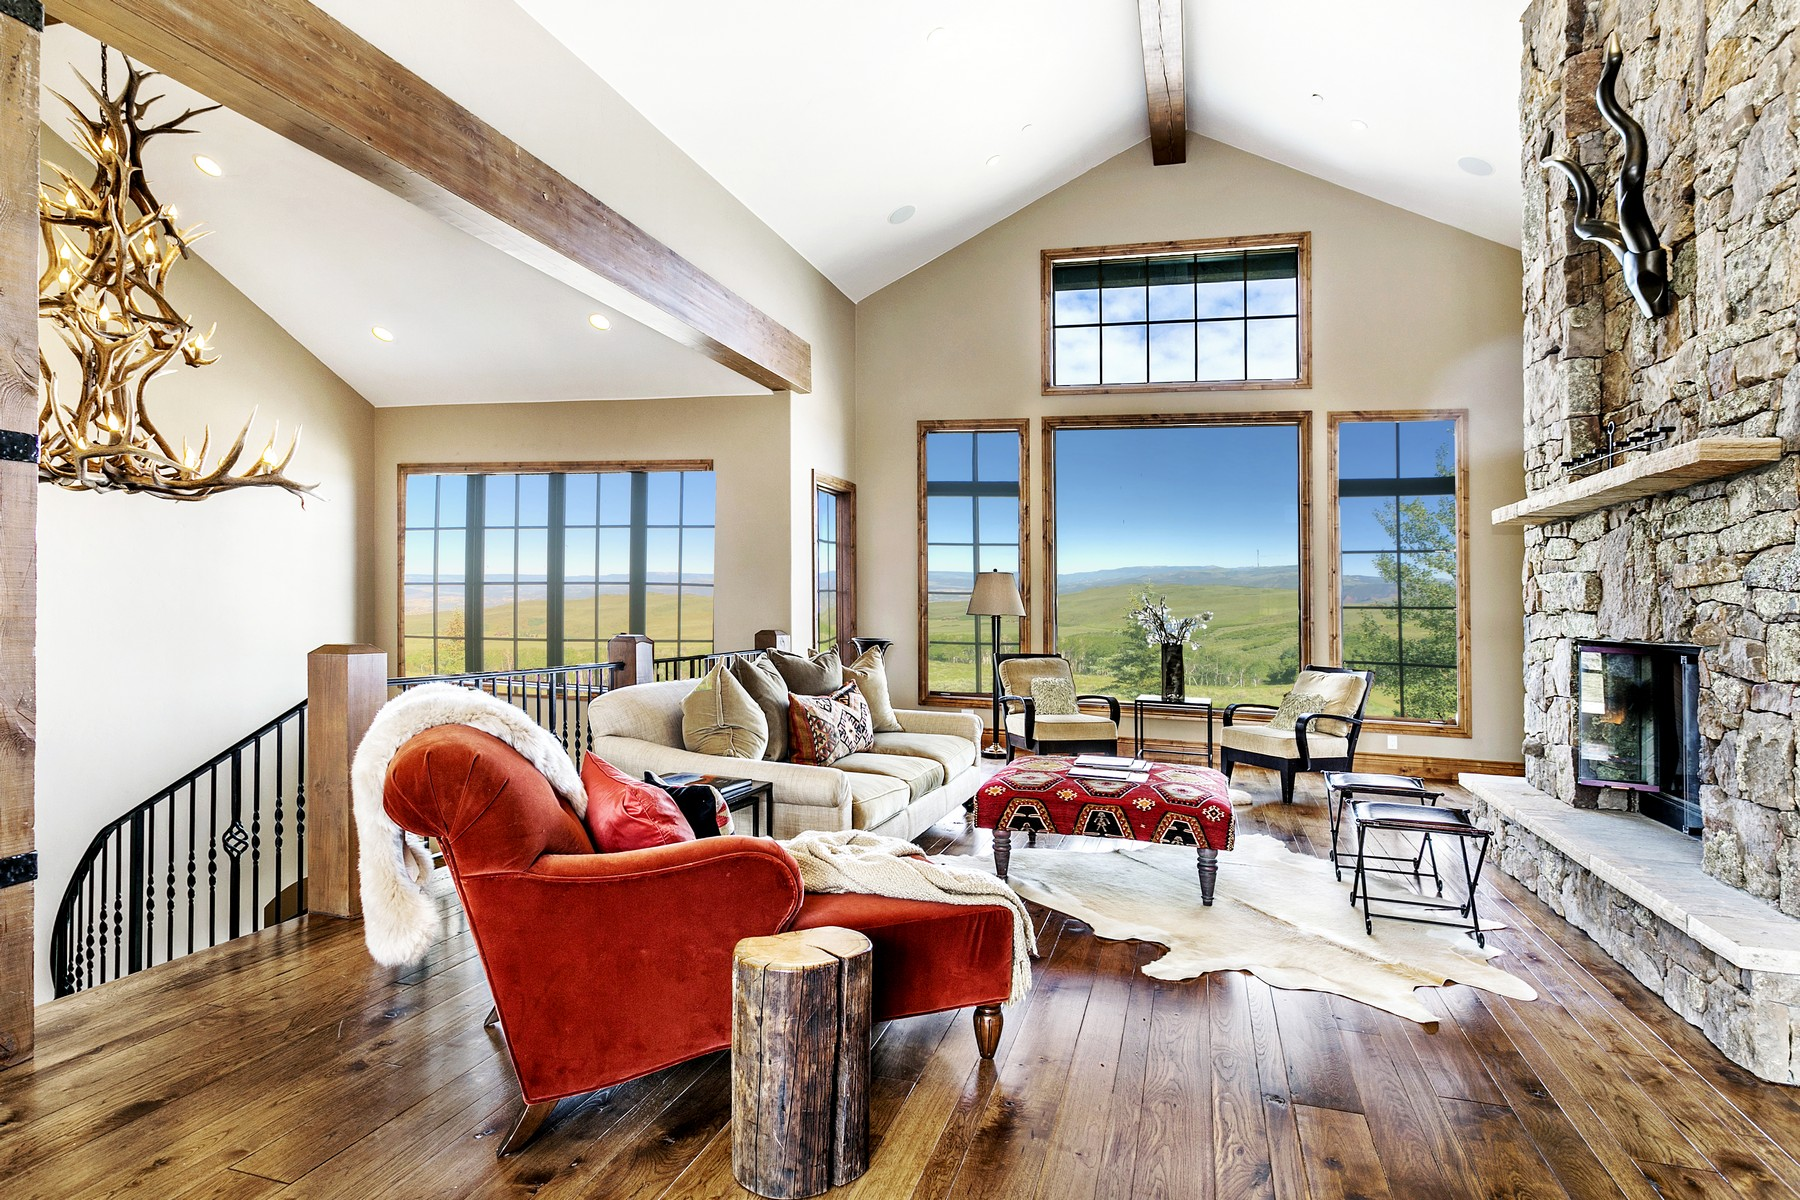 Single Family Home for Active at Summit Golf Course custom home in Cordillera on the 8th hole. 1117 Summit Trail Edwards, Colorado 81632 United States